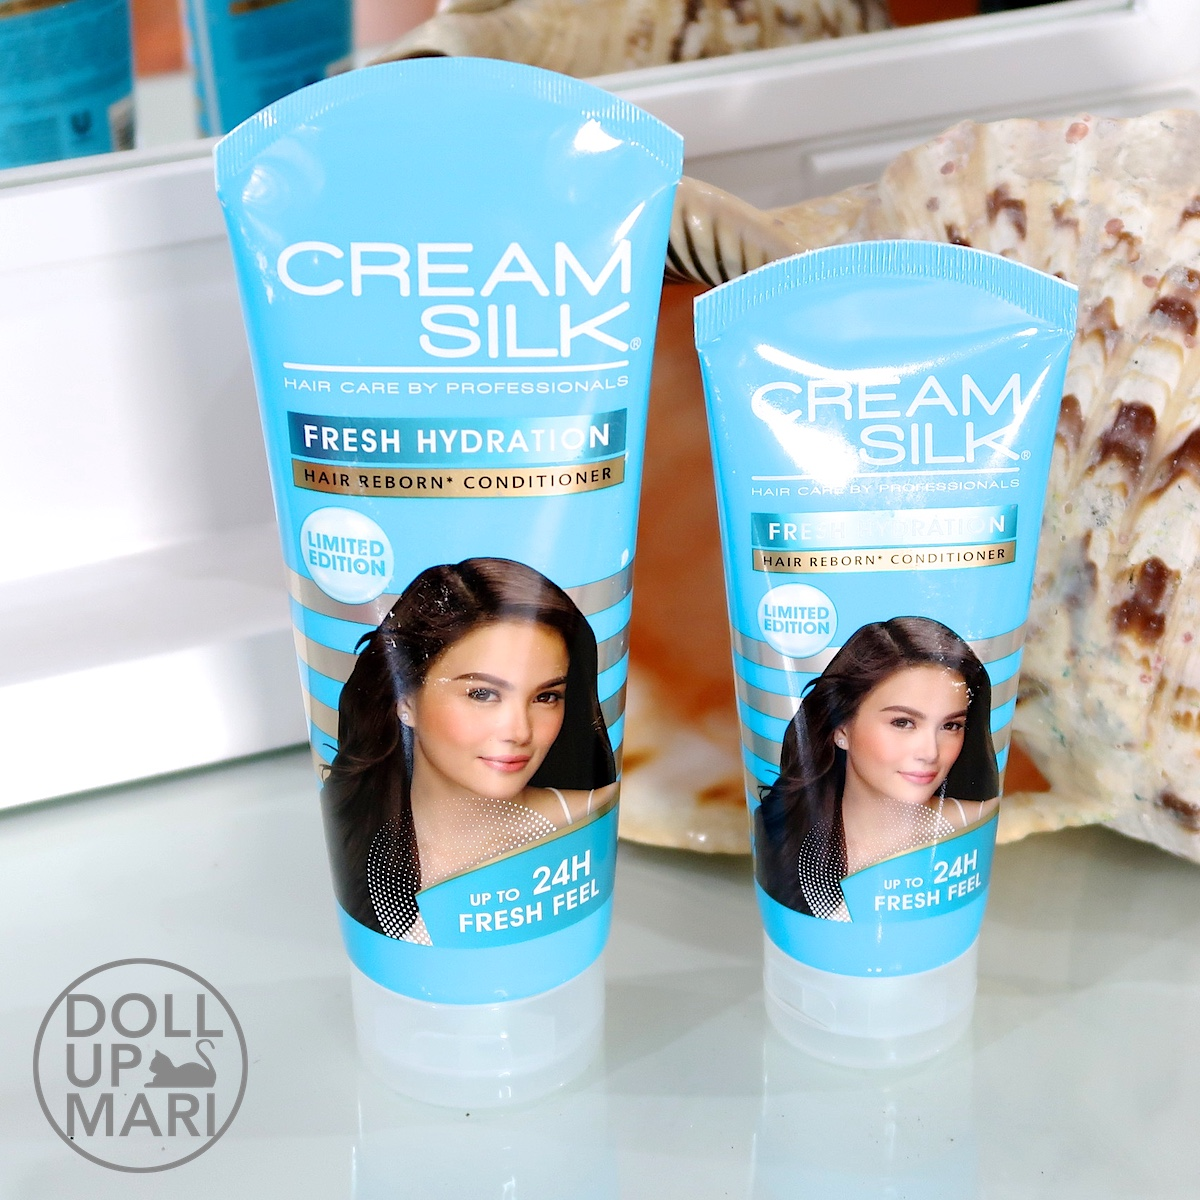 Cream Silk Fresh Hydration Conditioner Comparison Photo of 170mL and 340mL Pack Shots